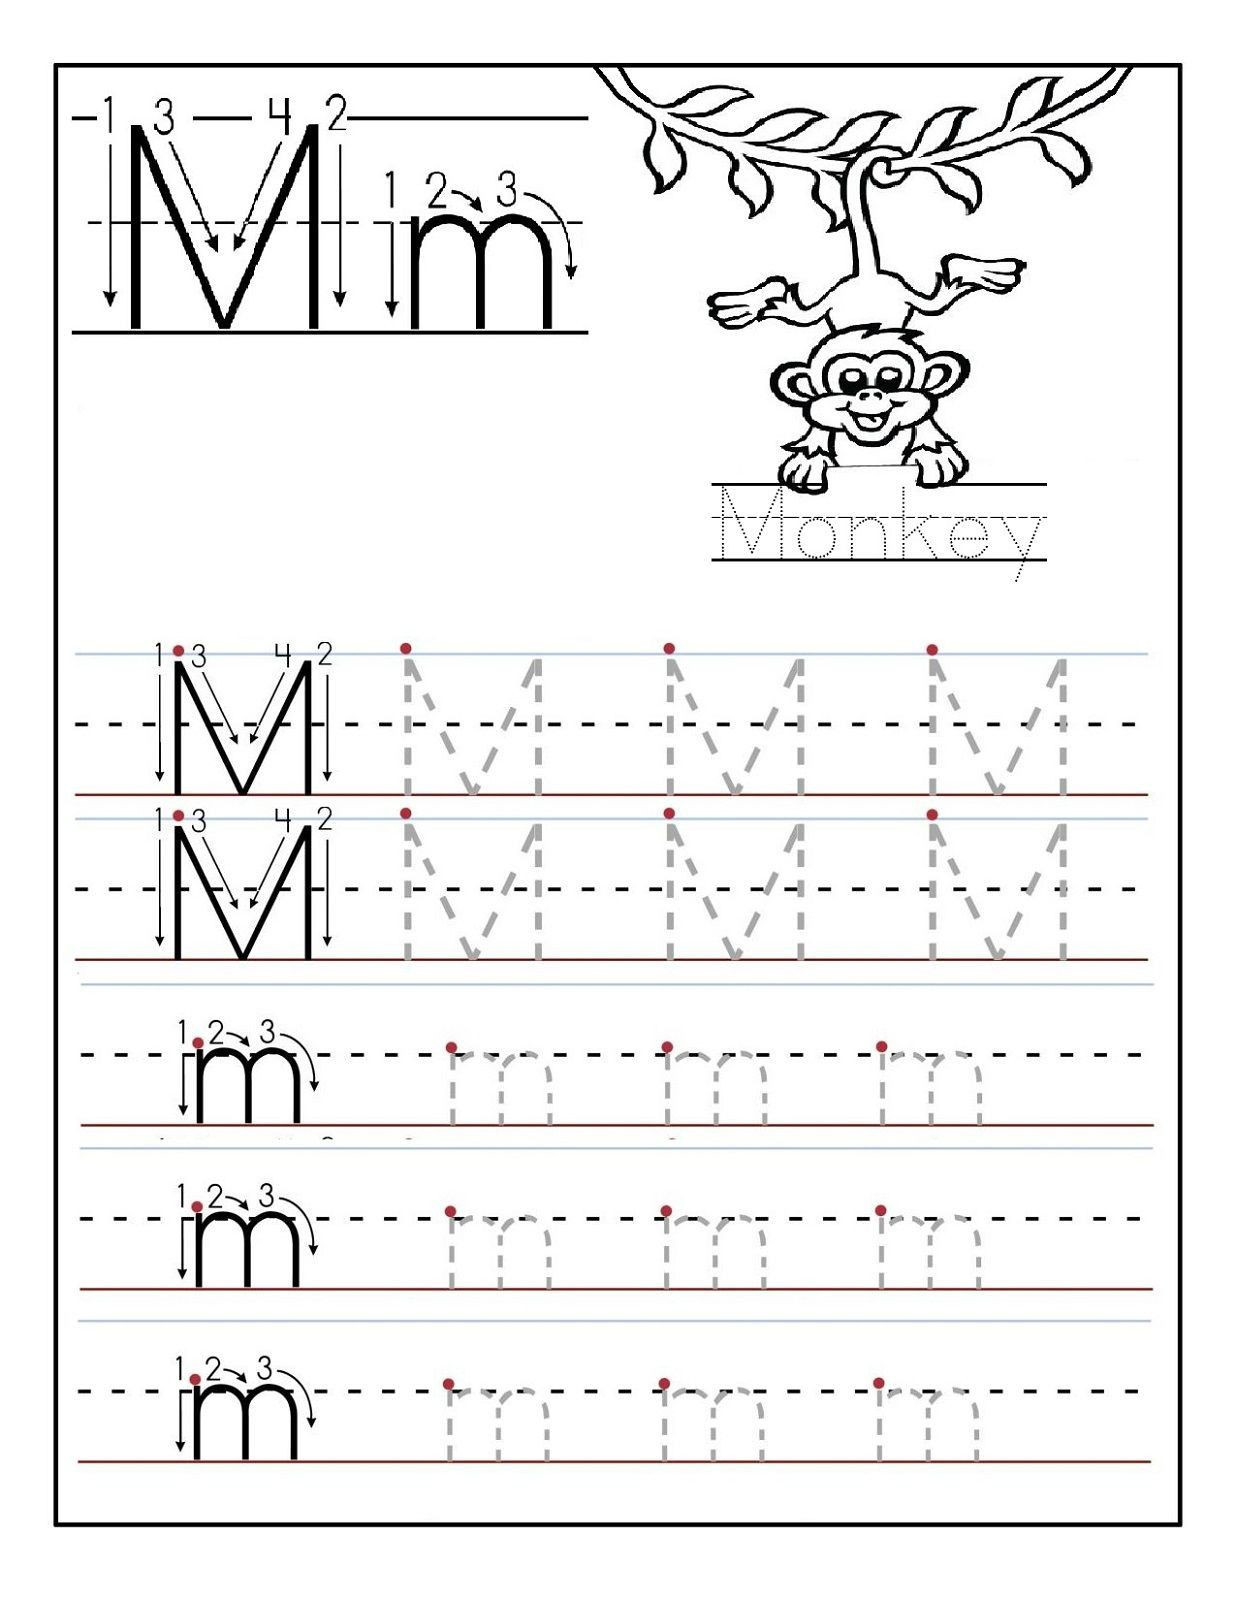 Letter N Preschool Worksheets 2 Preschool Letter N Tracing Worksheets In 2020